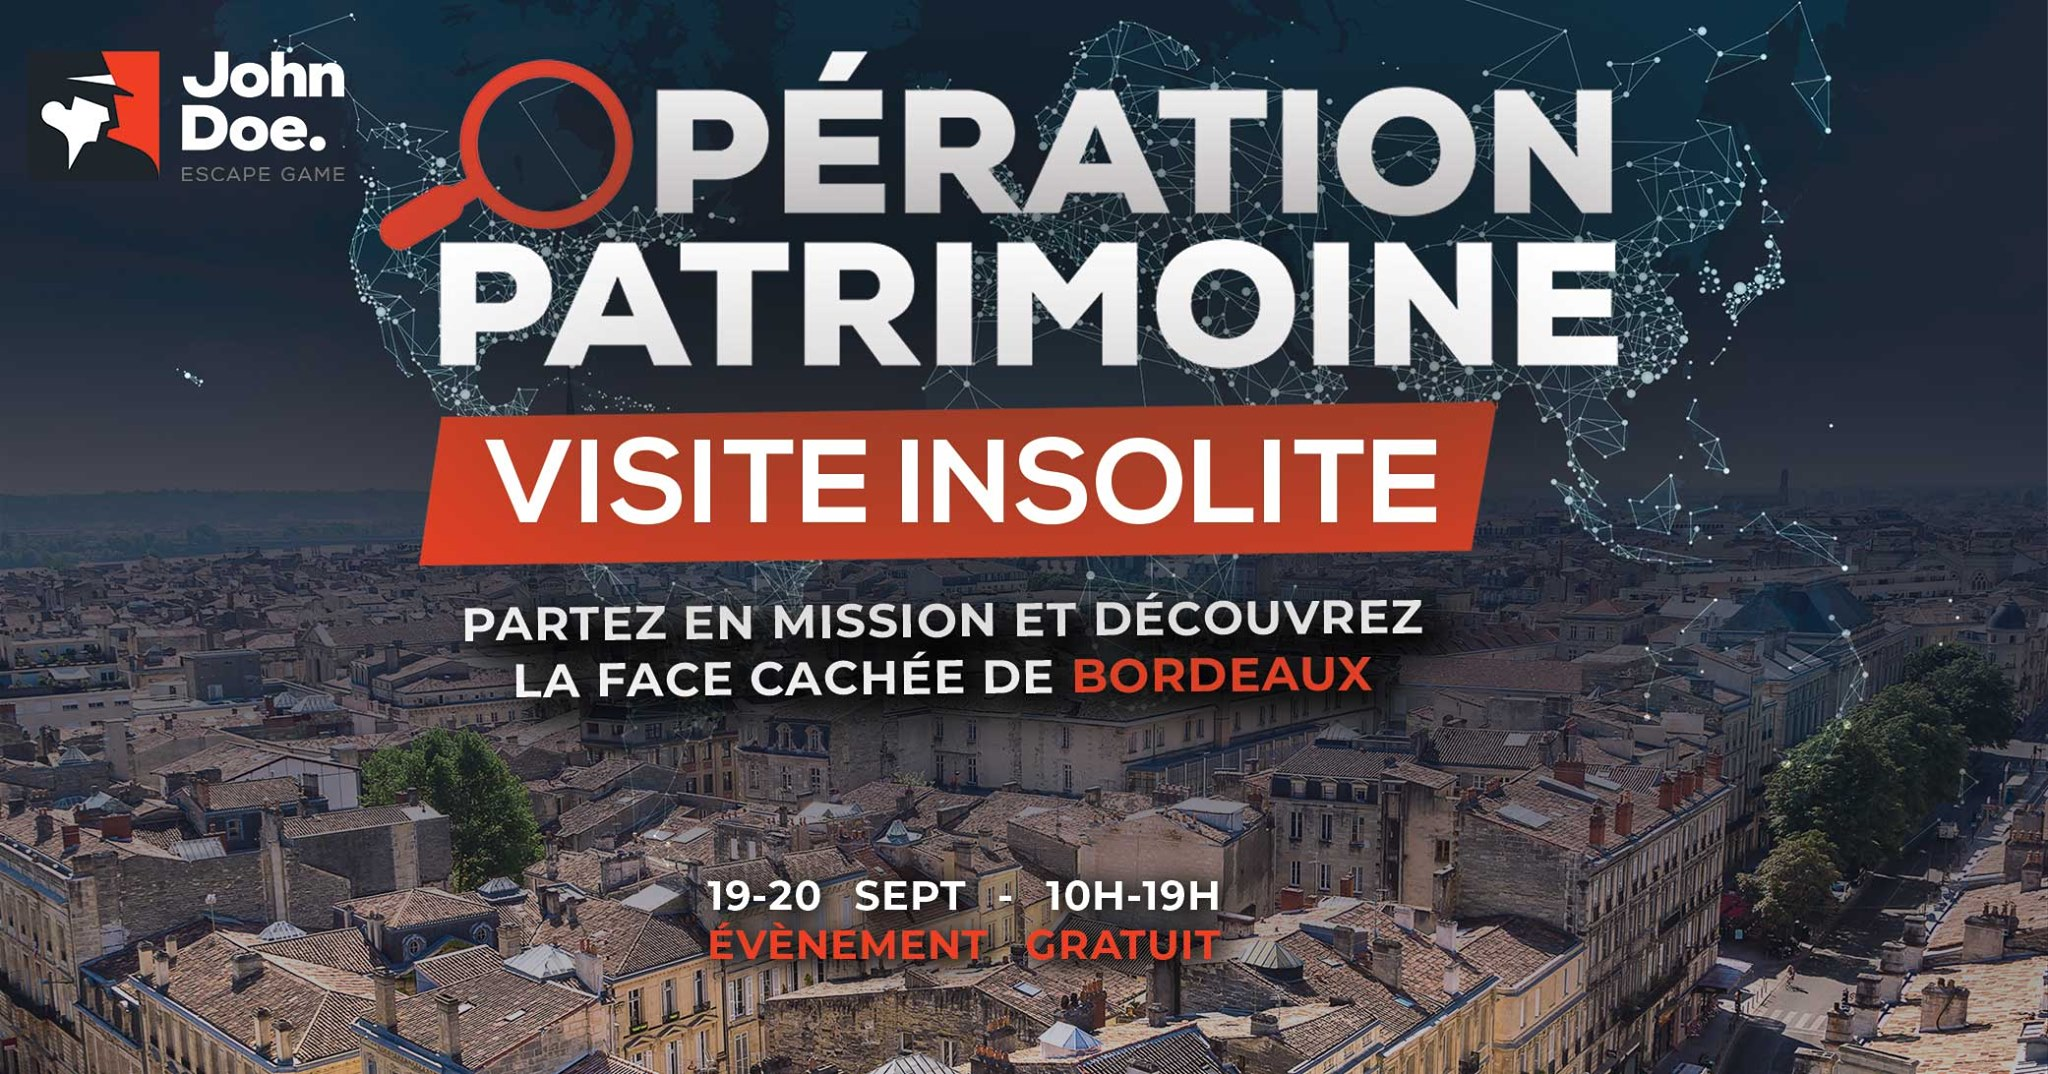 https://the-place-to-be.fr/wp-content/uploads/2020/09/operation-patrimoine-bordeuax-2020.jpg